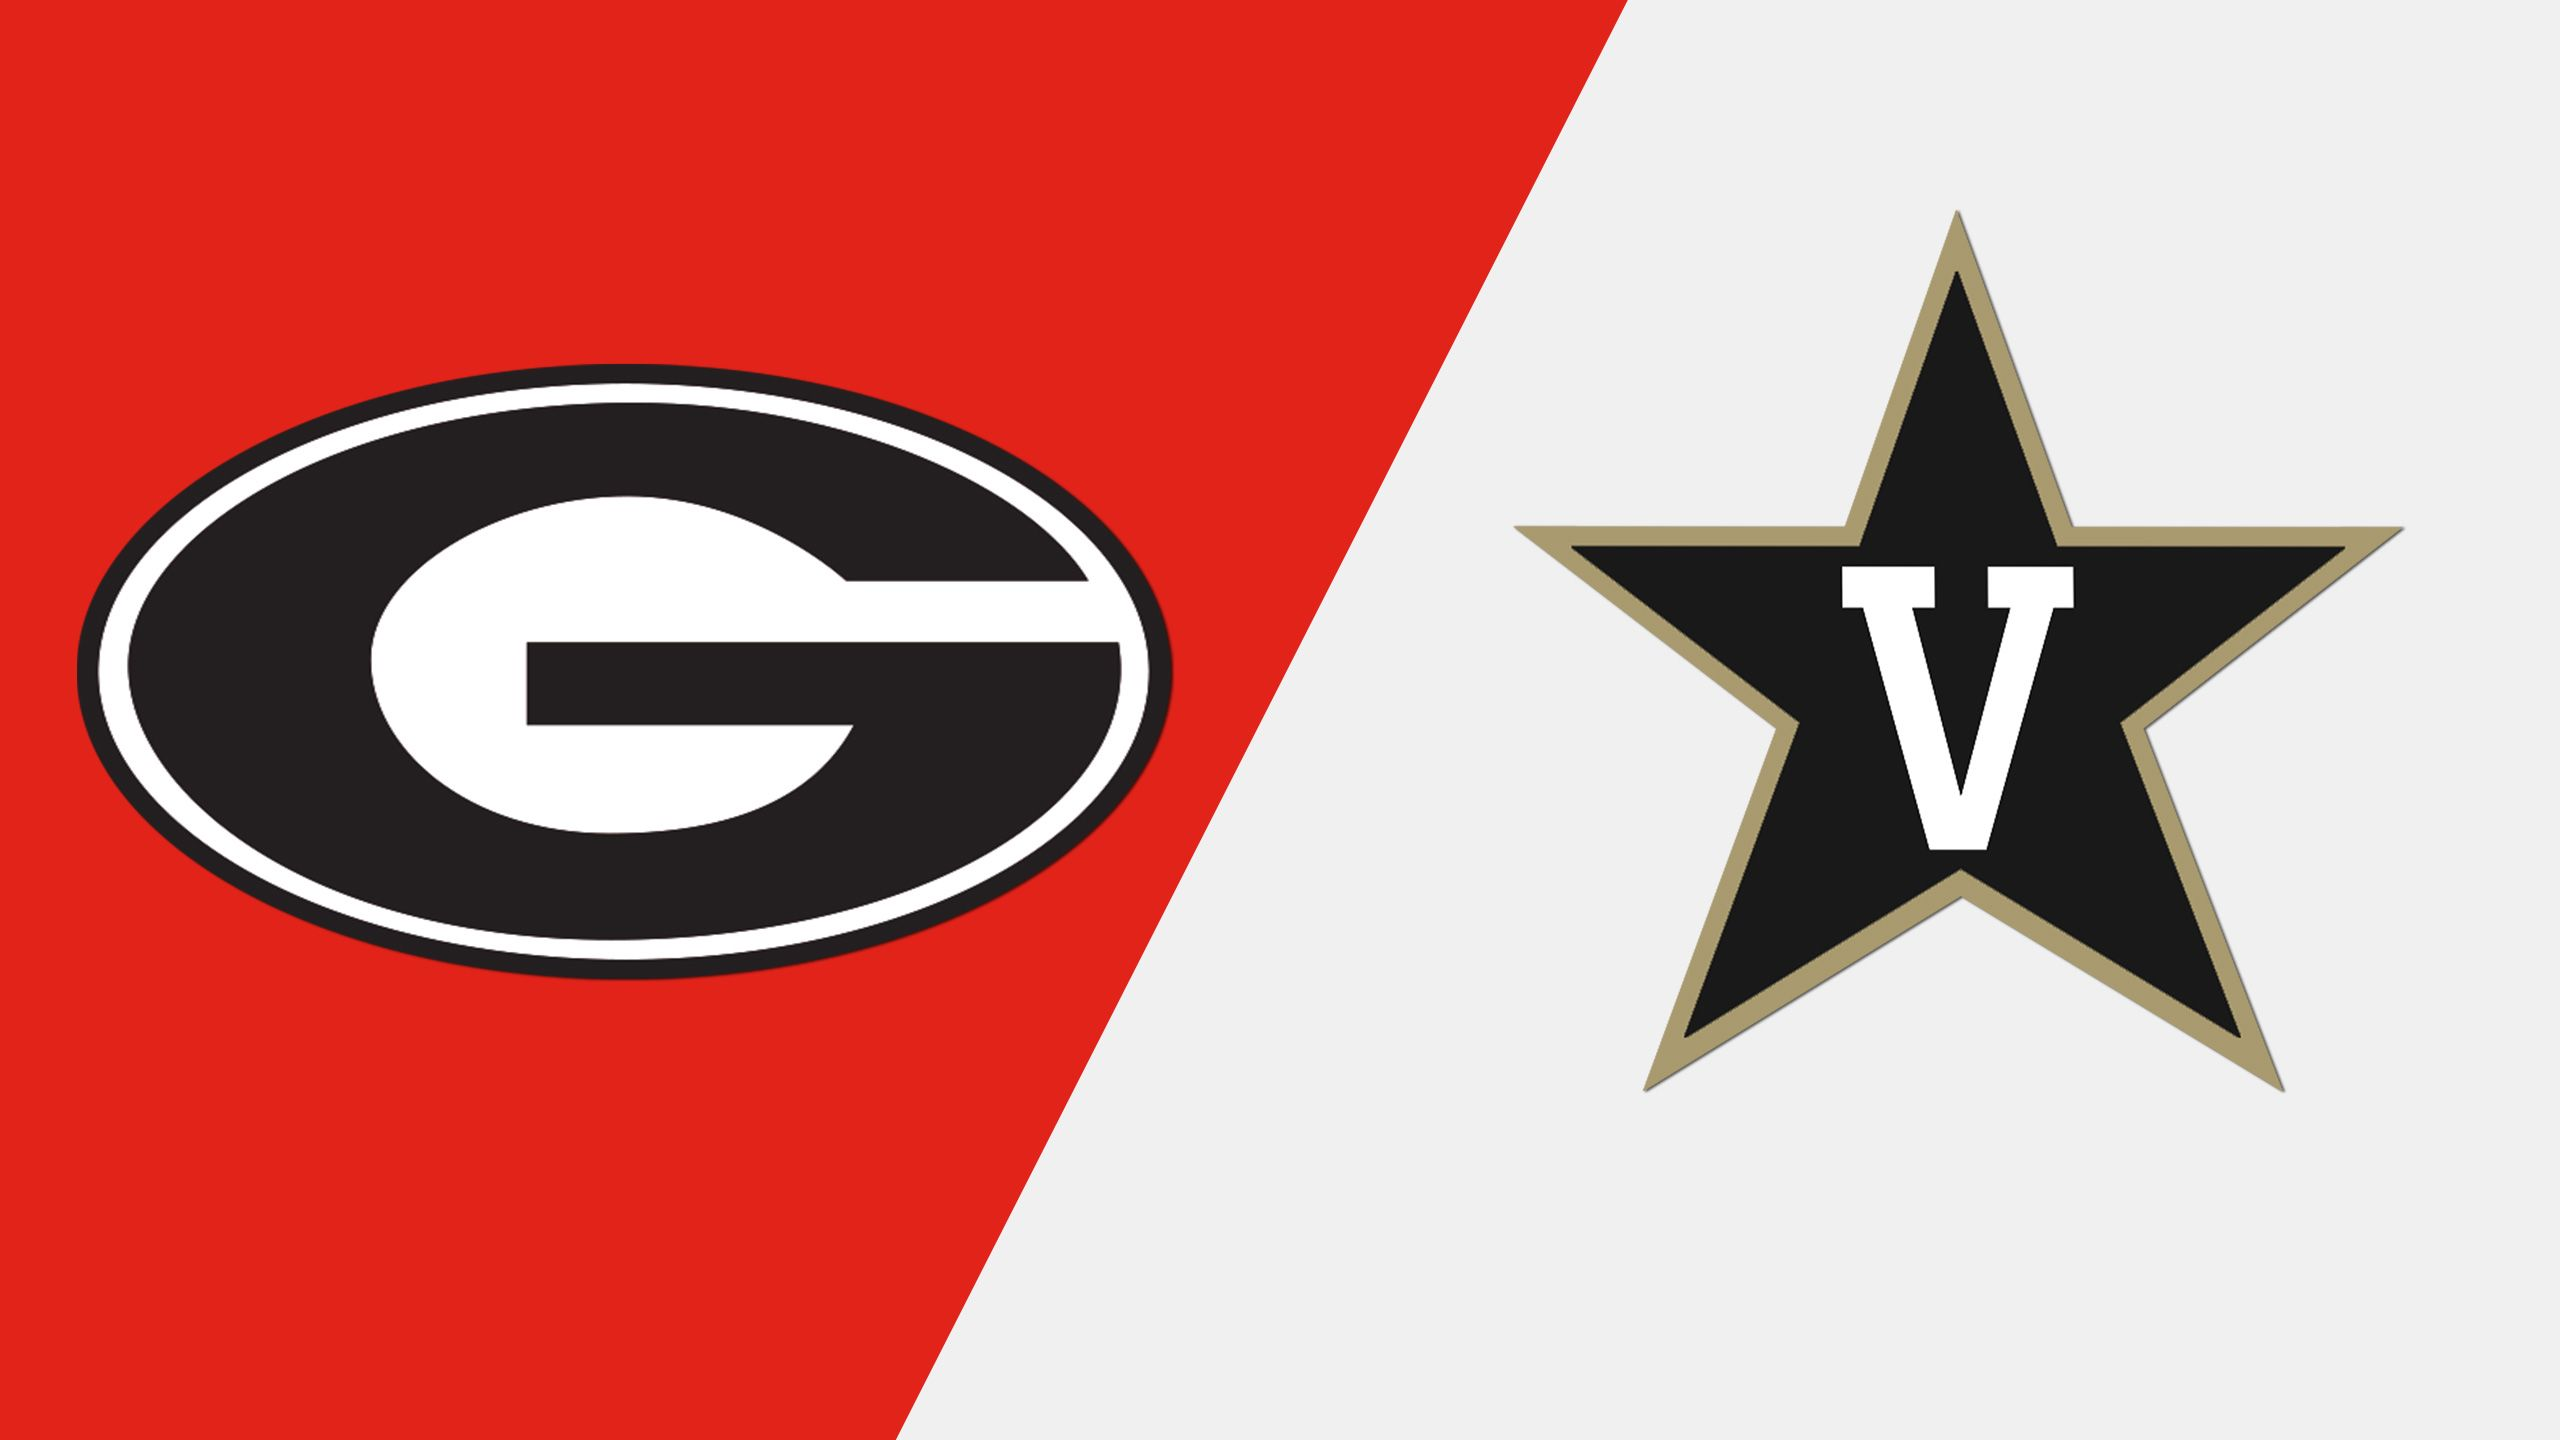 #17 Georgia vs. #16 Vanderbilt (Baseball)